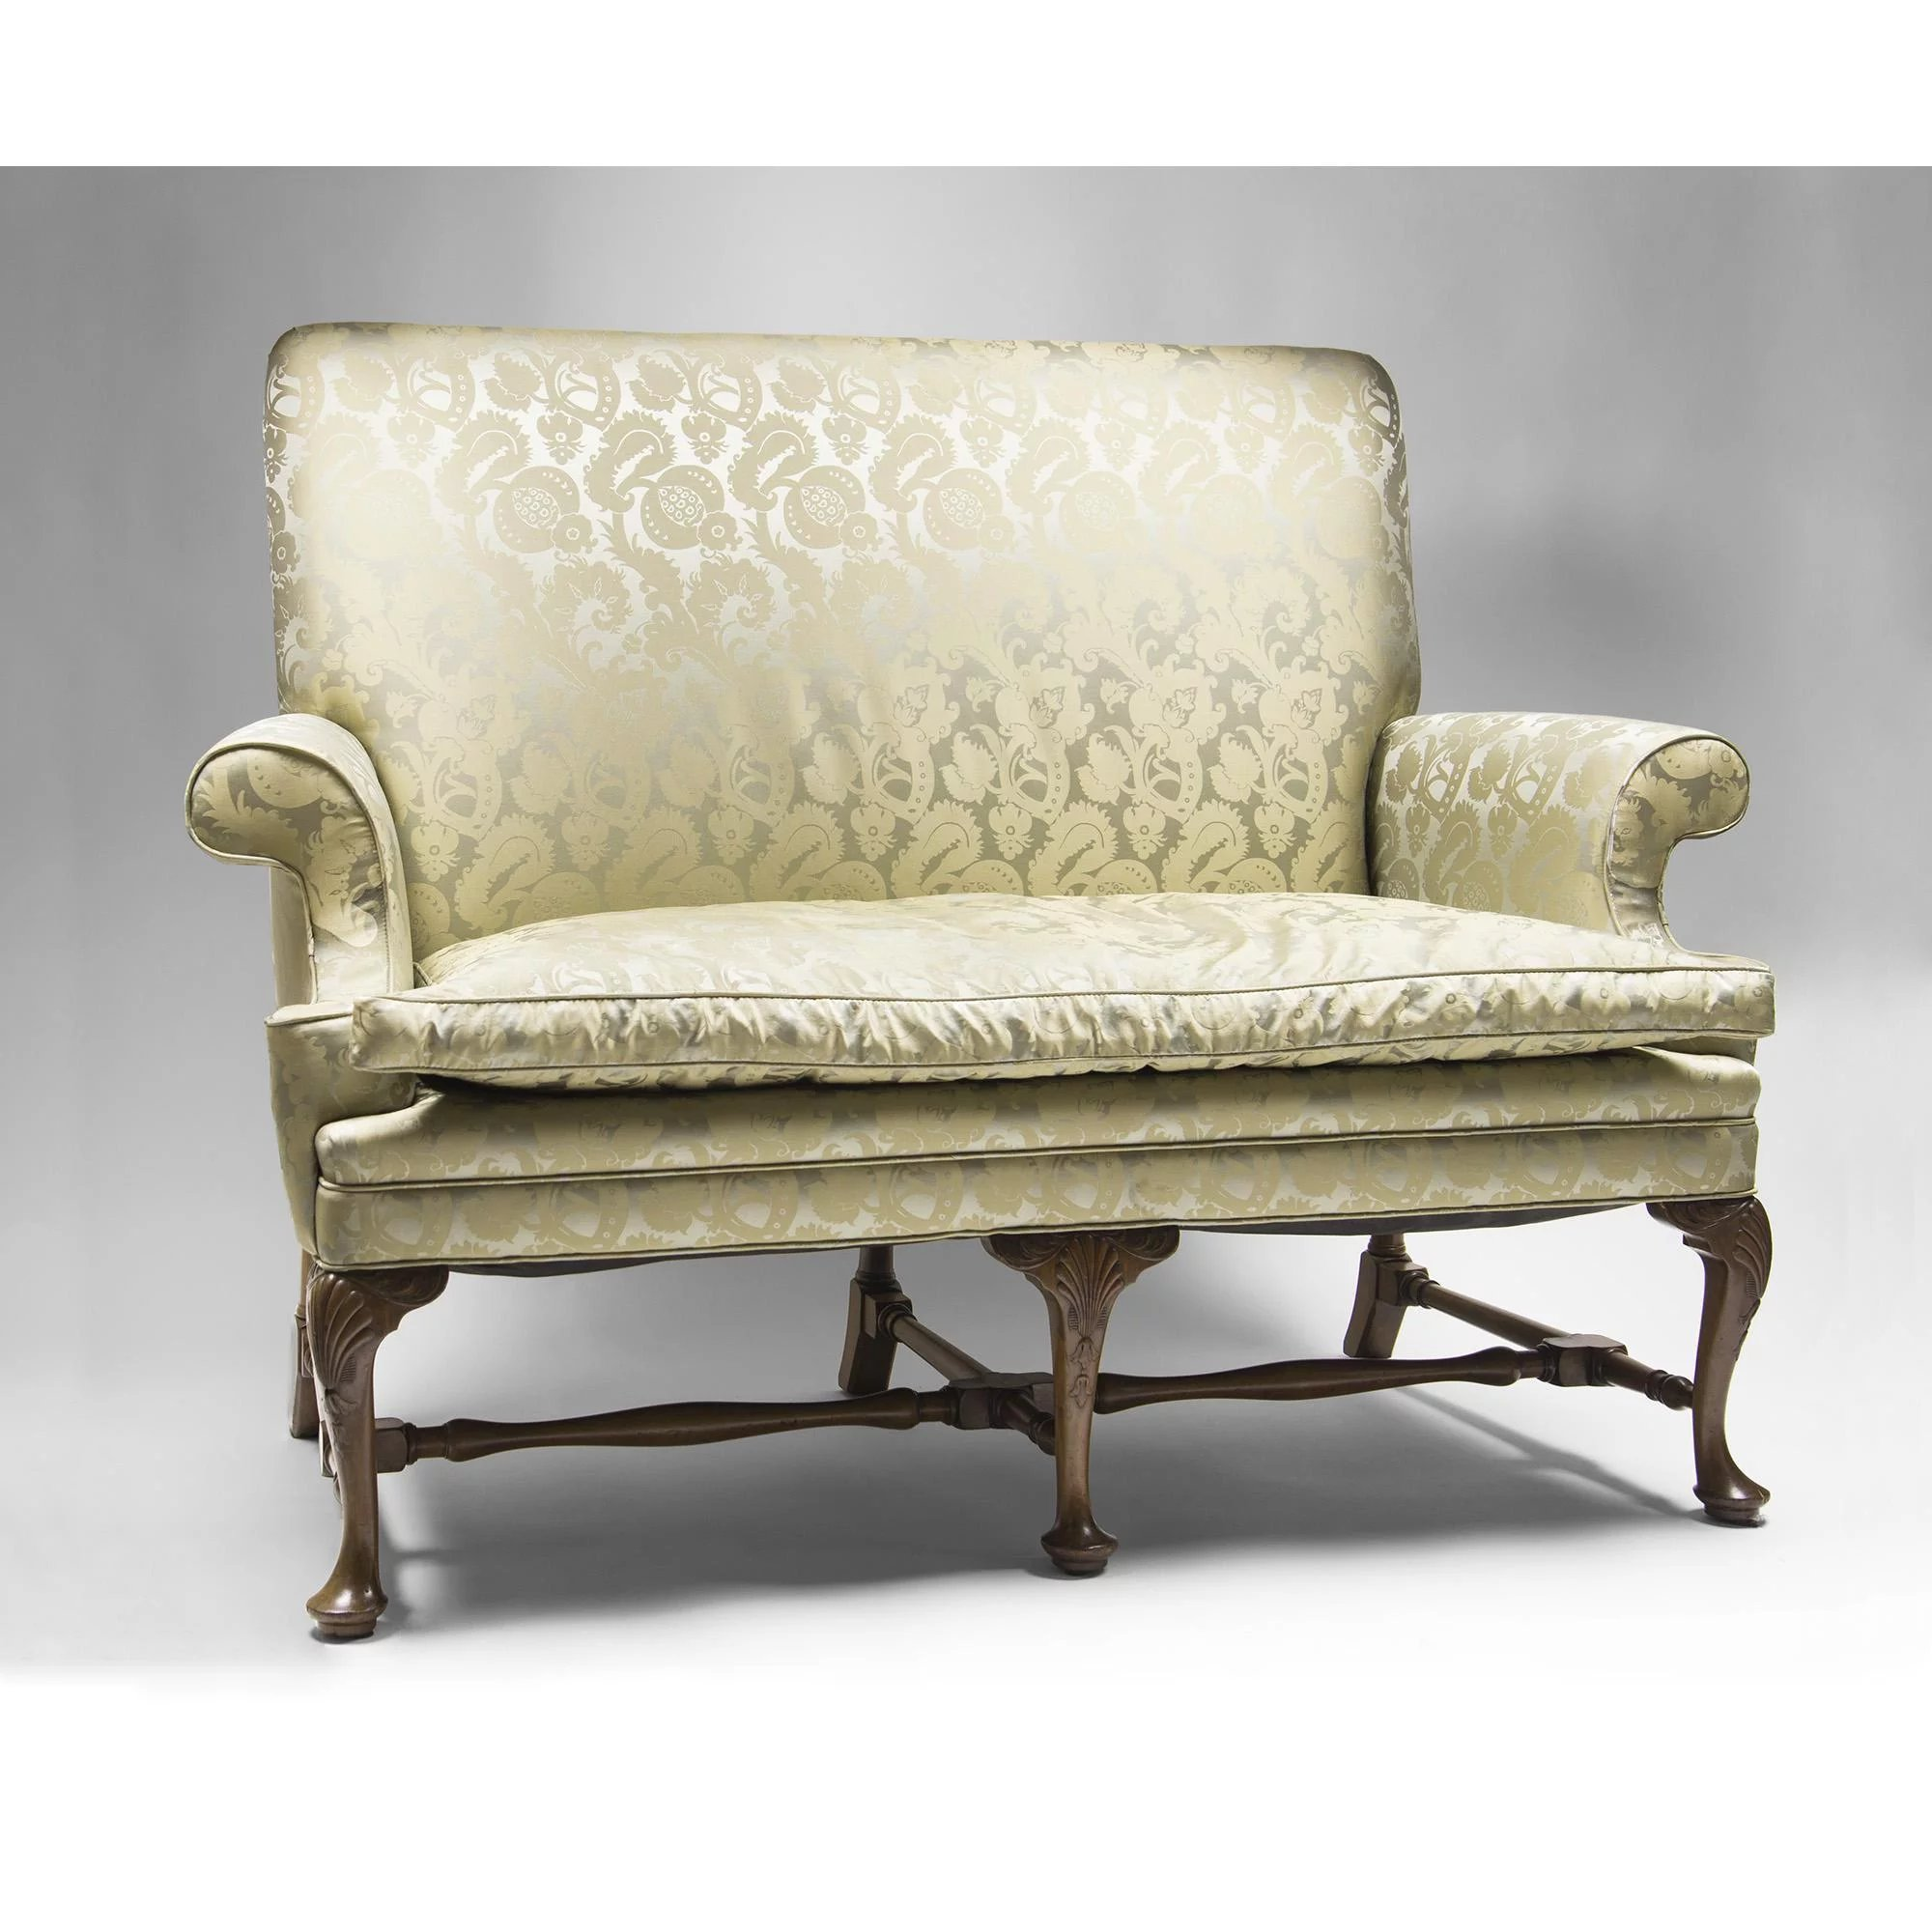 Sofa Queen Anne 19th C Queen Anne Style Highback Hall Settee